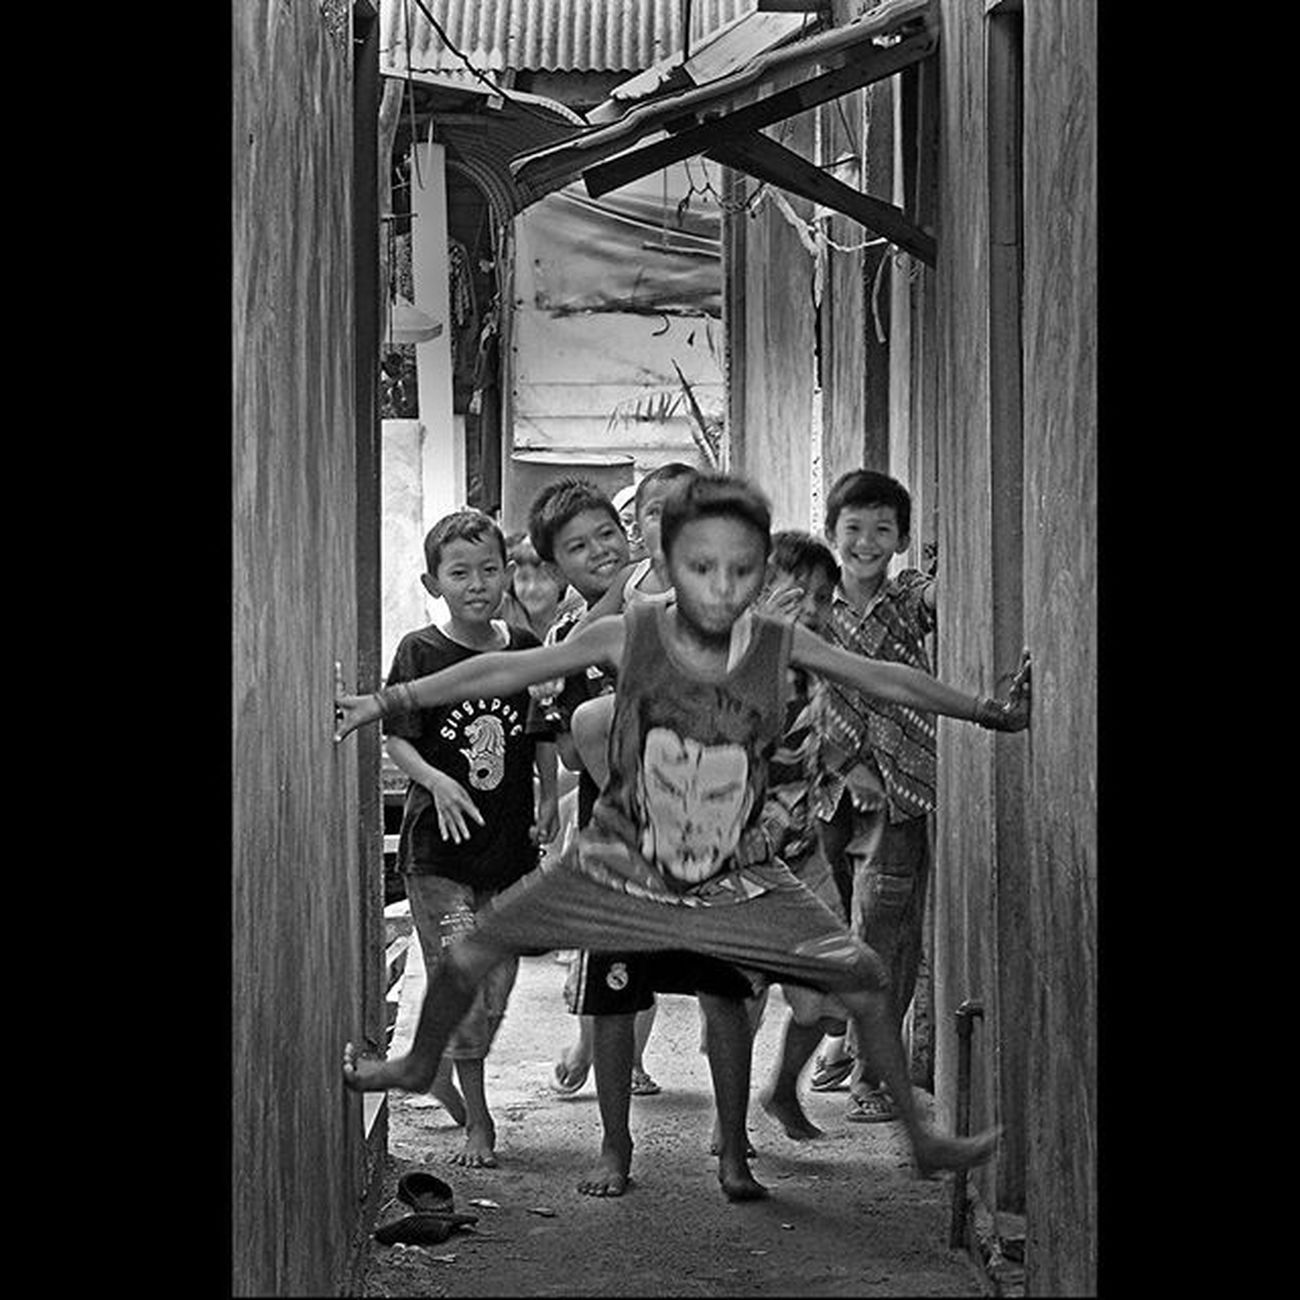 The happiness boys in Agas Village, Tanjung Uma, Batam. They are just village boys, but it's not make they unhappy only play with a simple games. Serikat_fi 1000kata Pewartafotoindonesia Geonusantara Kompasnusantara Natgeonesia Streetphotography Streetphotographers StreetLife_Award Streetphoto_bw Blackandwhitephoto Bw_indonesia Artphoto_bw Insta_bnw Bnw_globe Bw Bnw_worldwide Bestshooter_bw Bw_photooftheday Monochrome Mirrorless Mirrorlesscamera CSC Olympusomd Olympusomdem10 OlympusUK GetOlympus